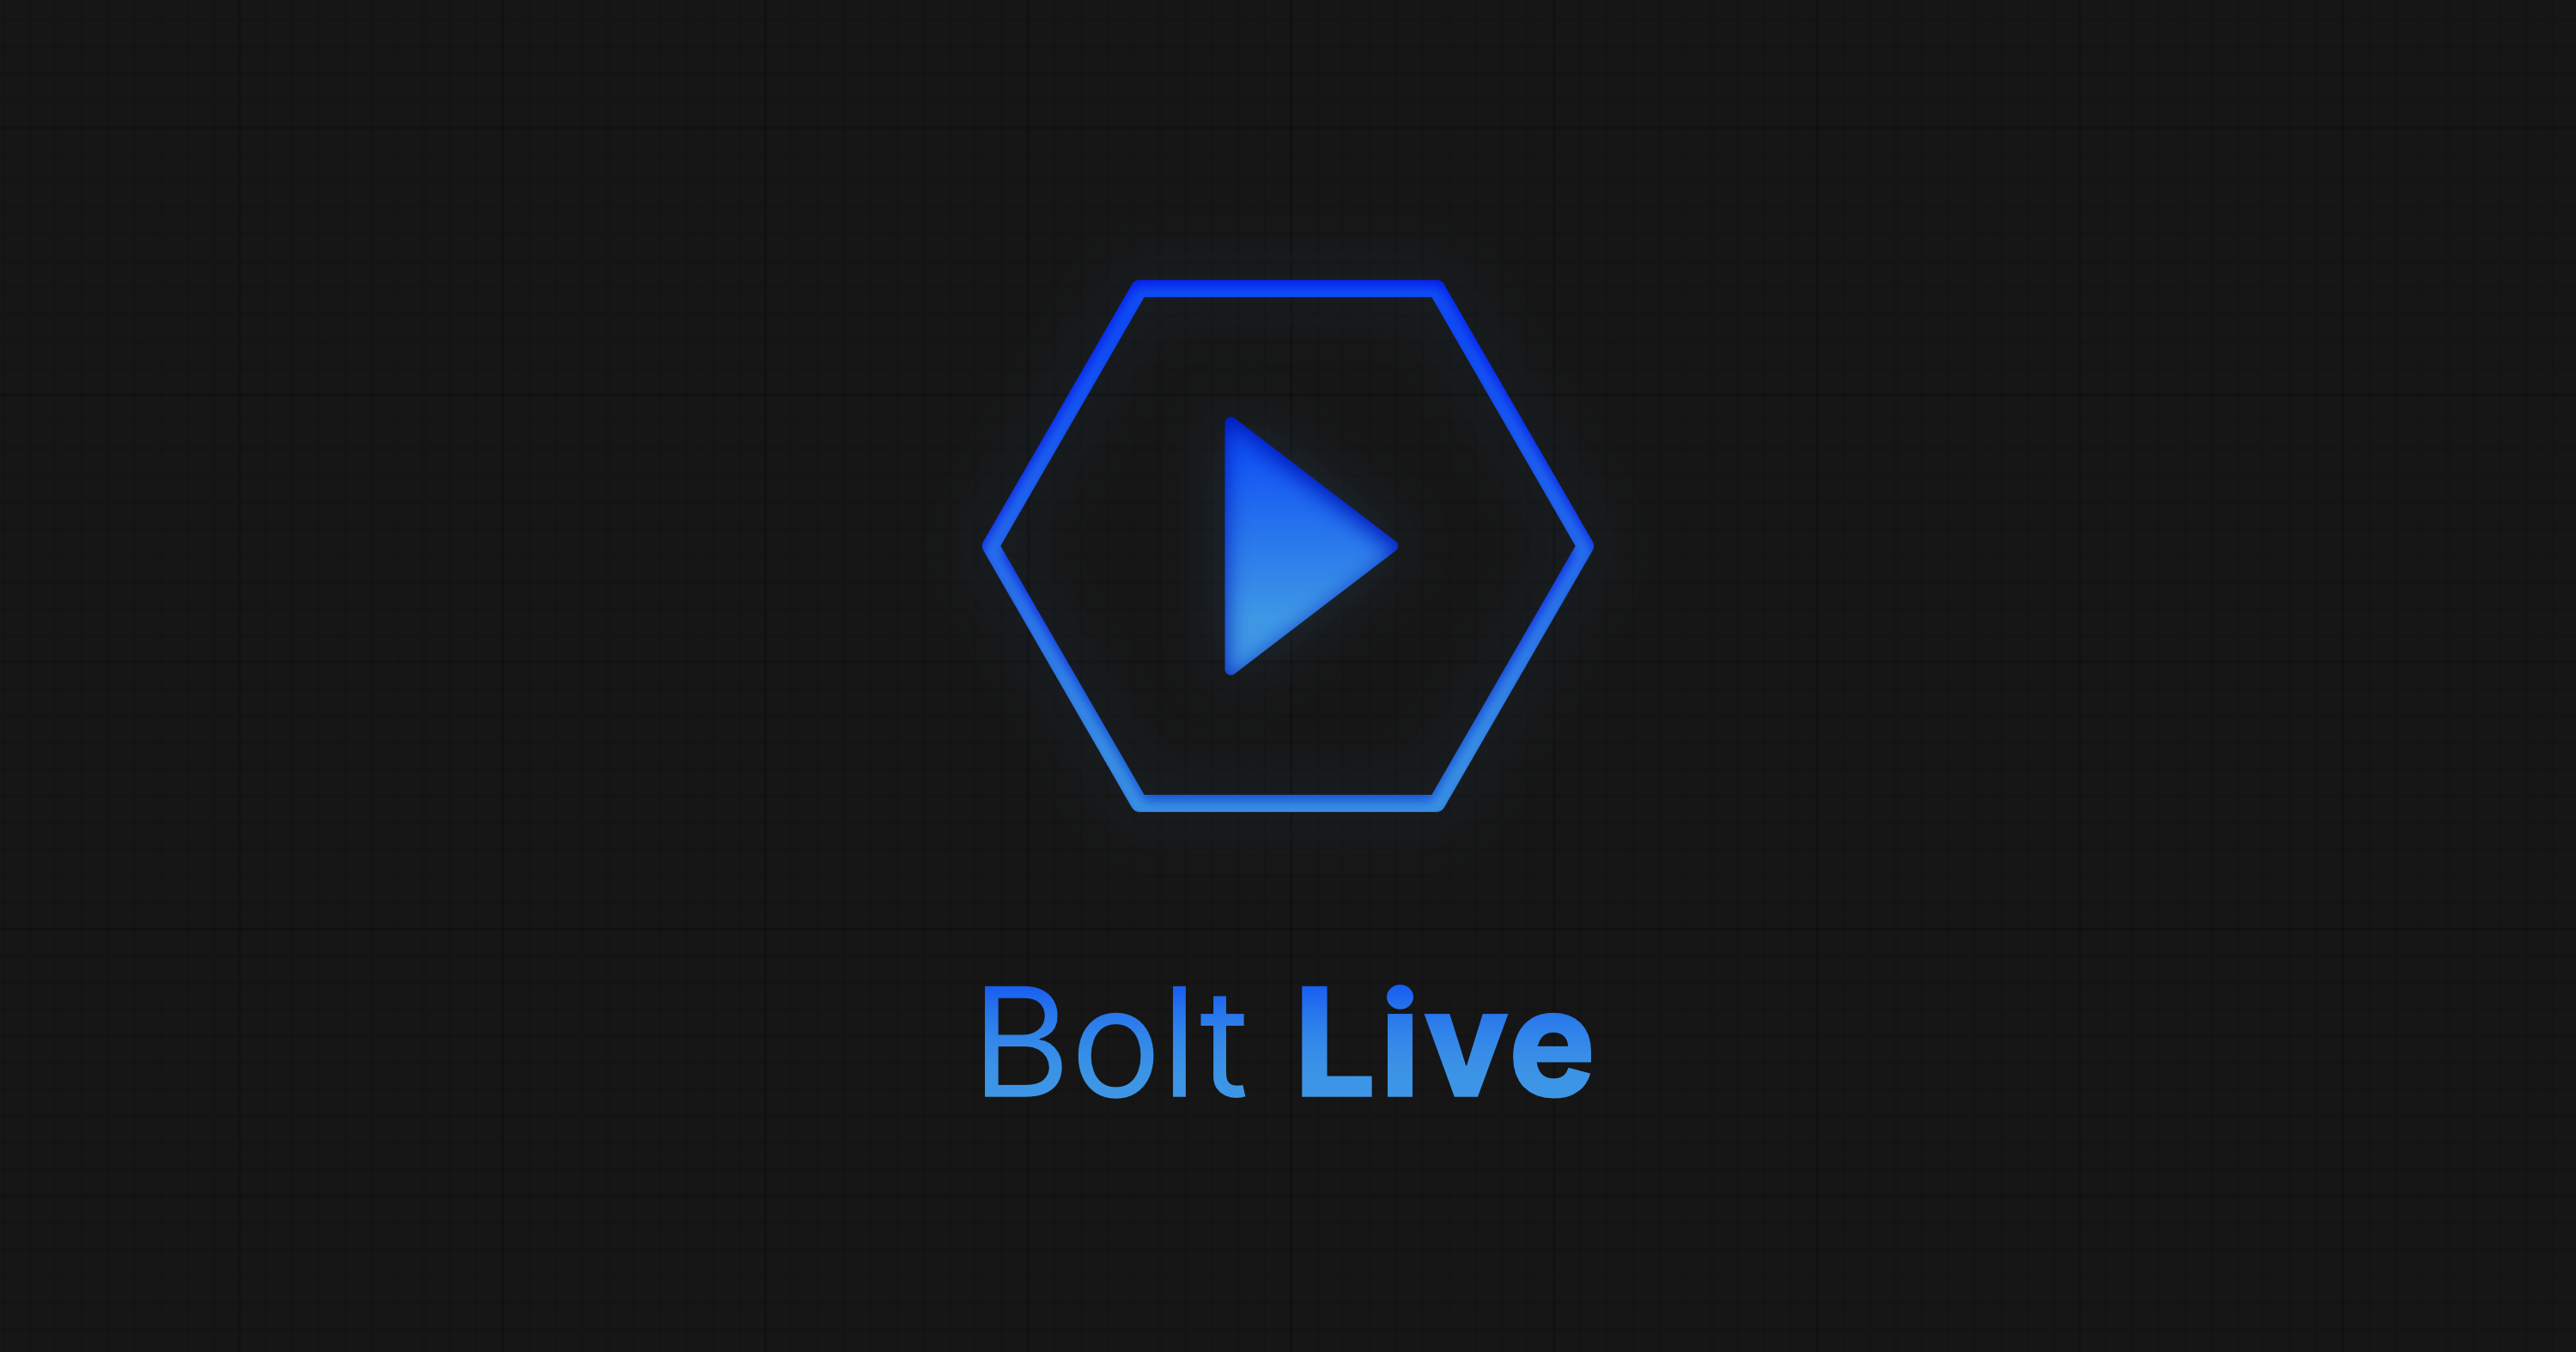 In Development: Bolt 1.4, the Live Update